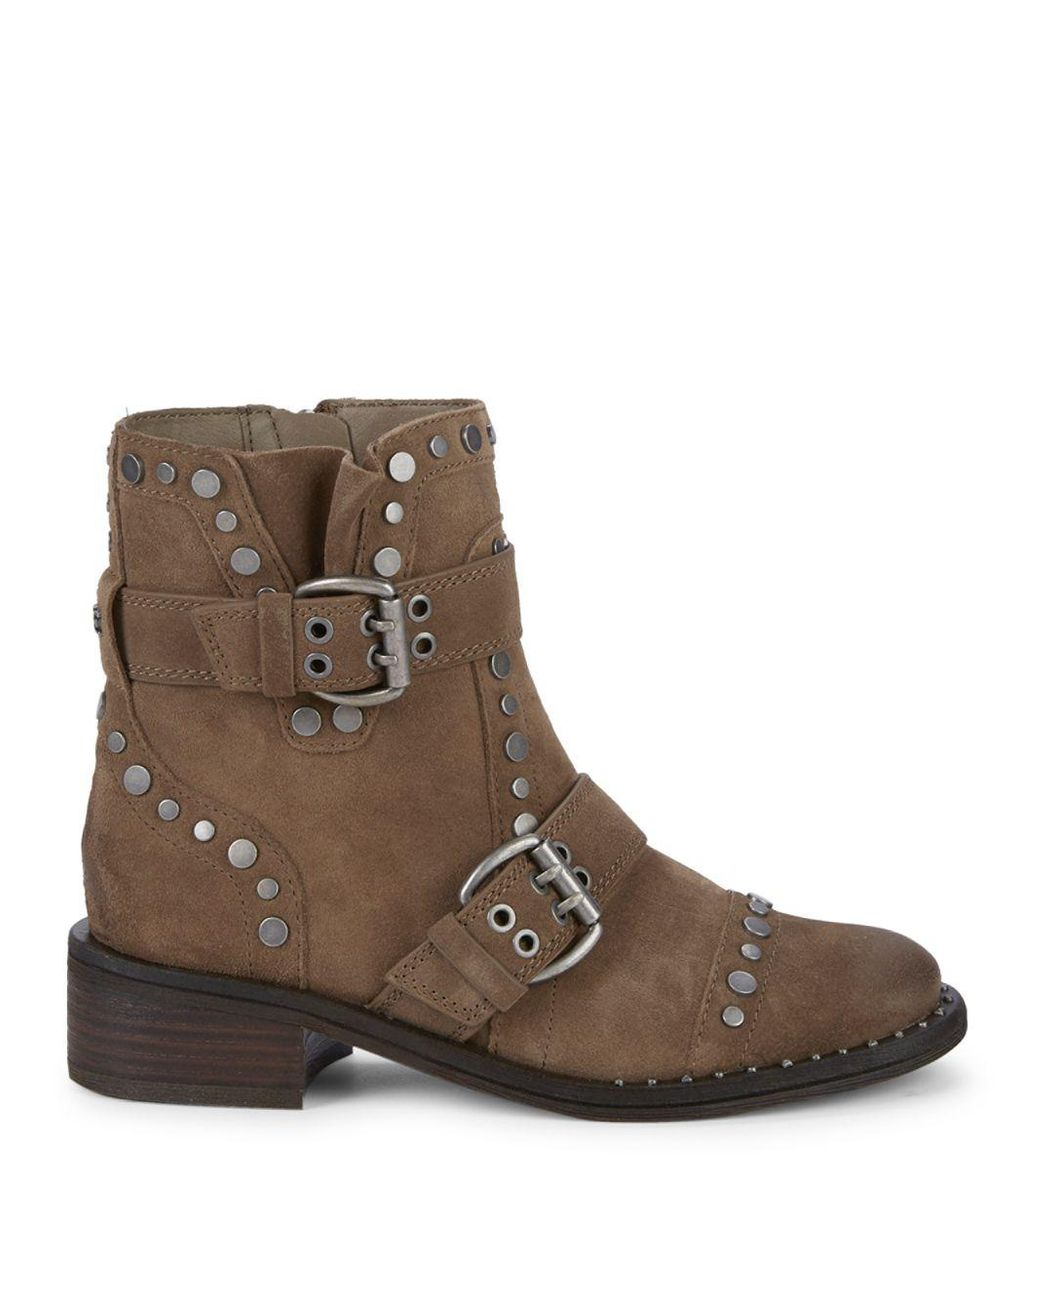 8d9d1dc83 Lyst - Sam Edelman Drea Studded Suede Booties in Brown - Save 61%